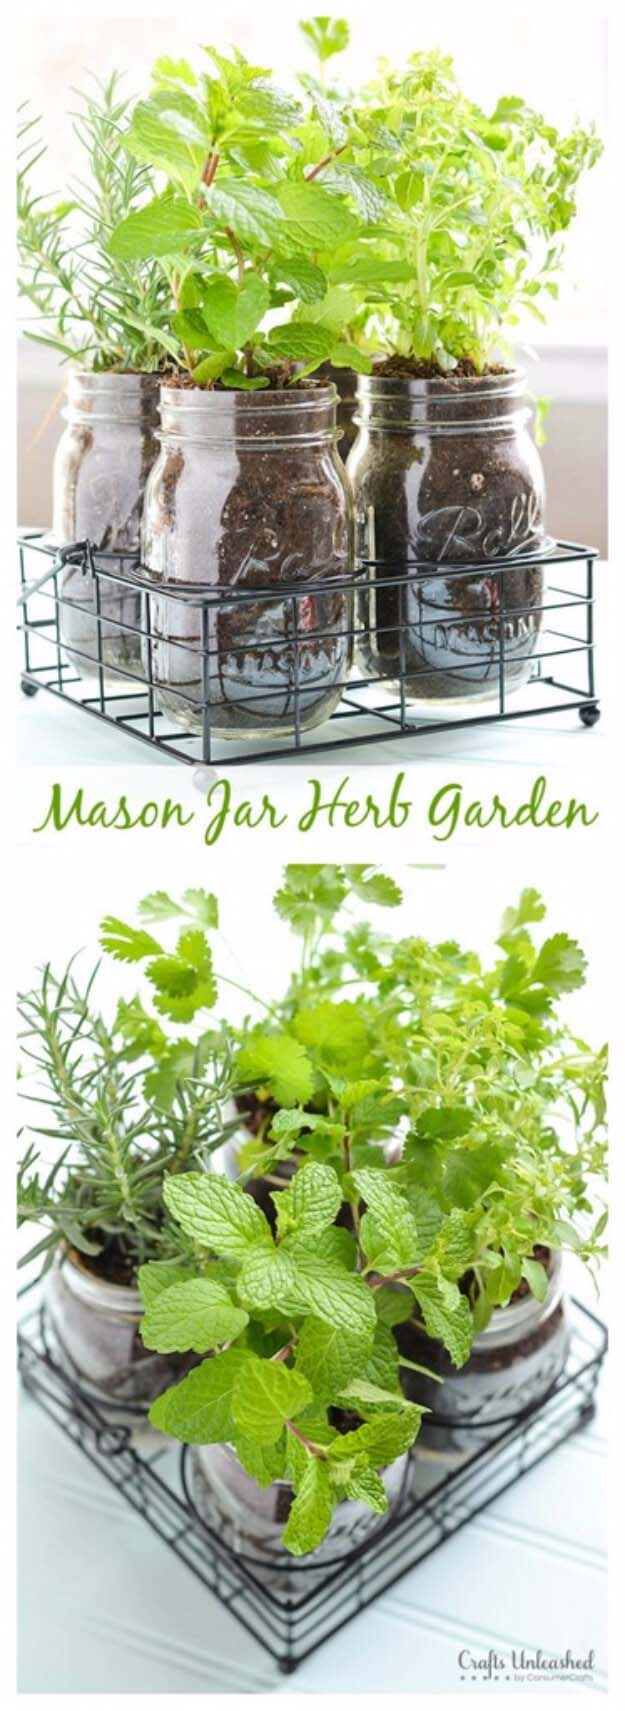 Herbs in a Jar #diy #herbgarden #herbs #garden #ideas #decorhomeideas